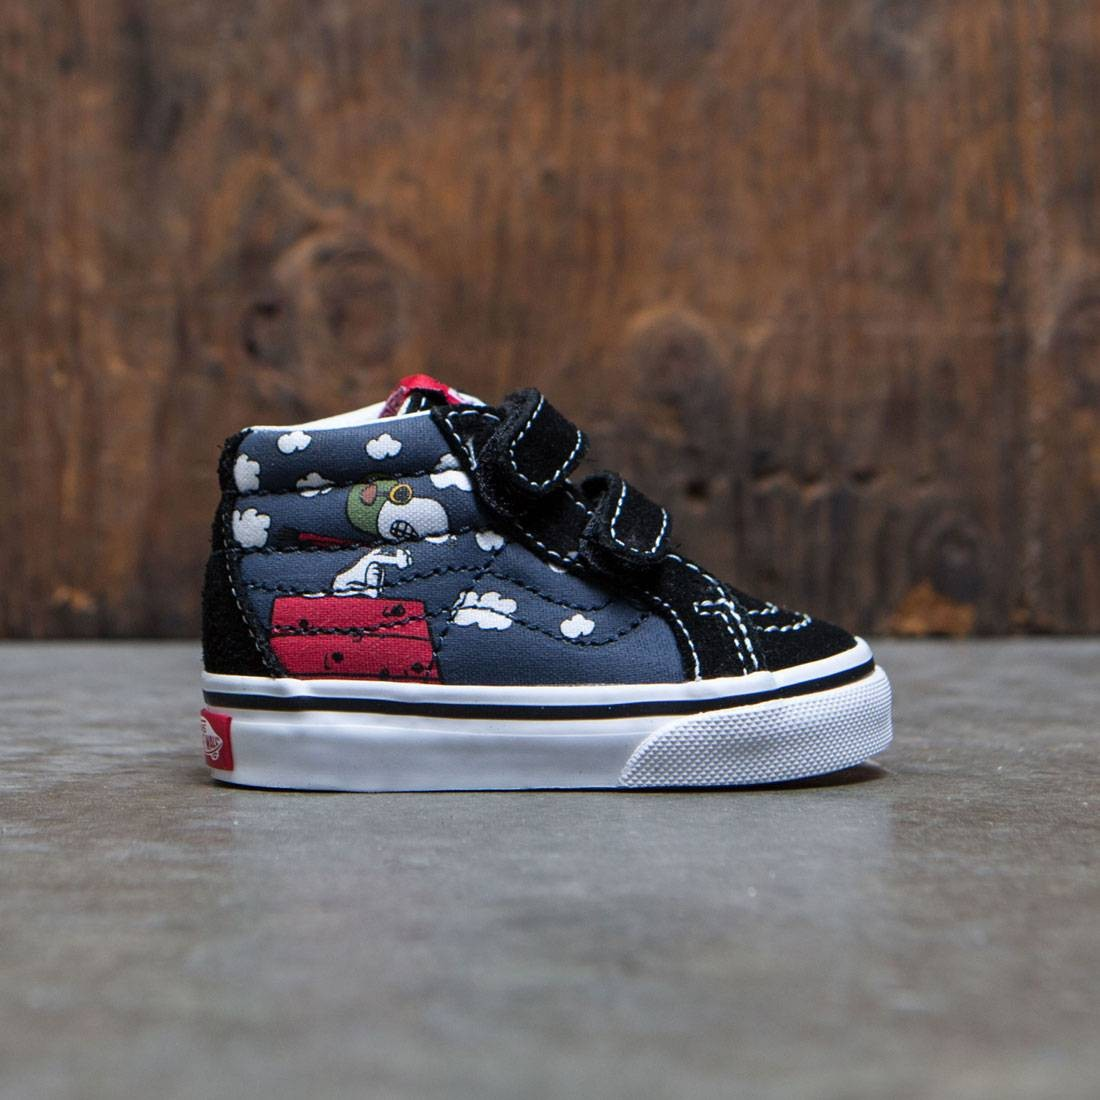 95fc00373e Vans x Peanuts Toddlers Sk8-Mid Reissue V - Flying Ace black